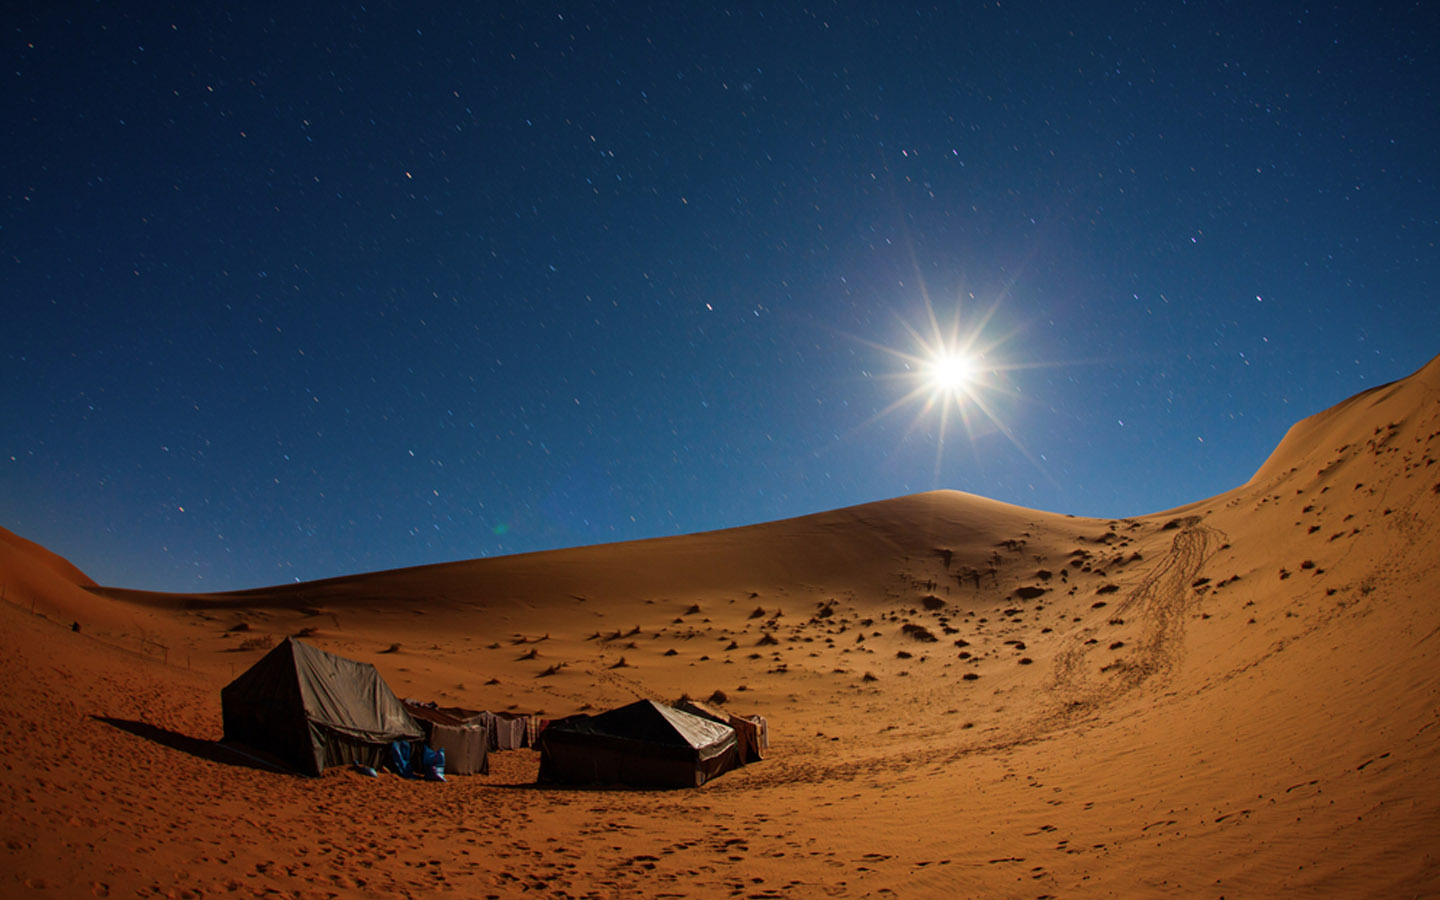 an amazing night camping site in the UAE desert